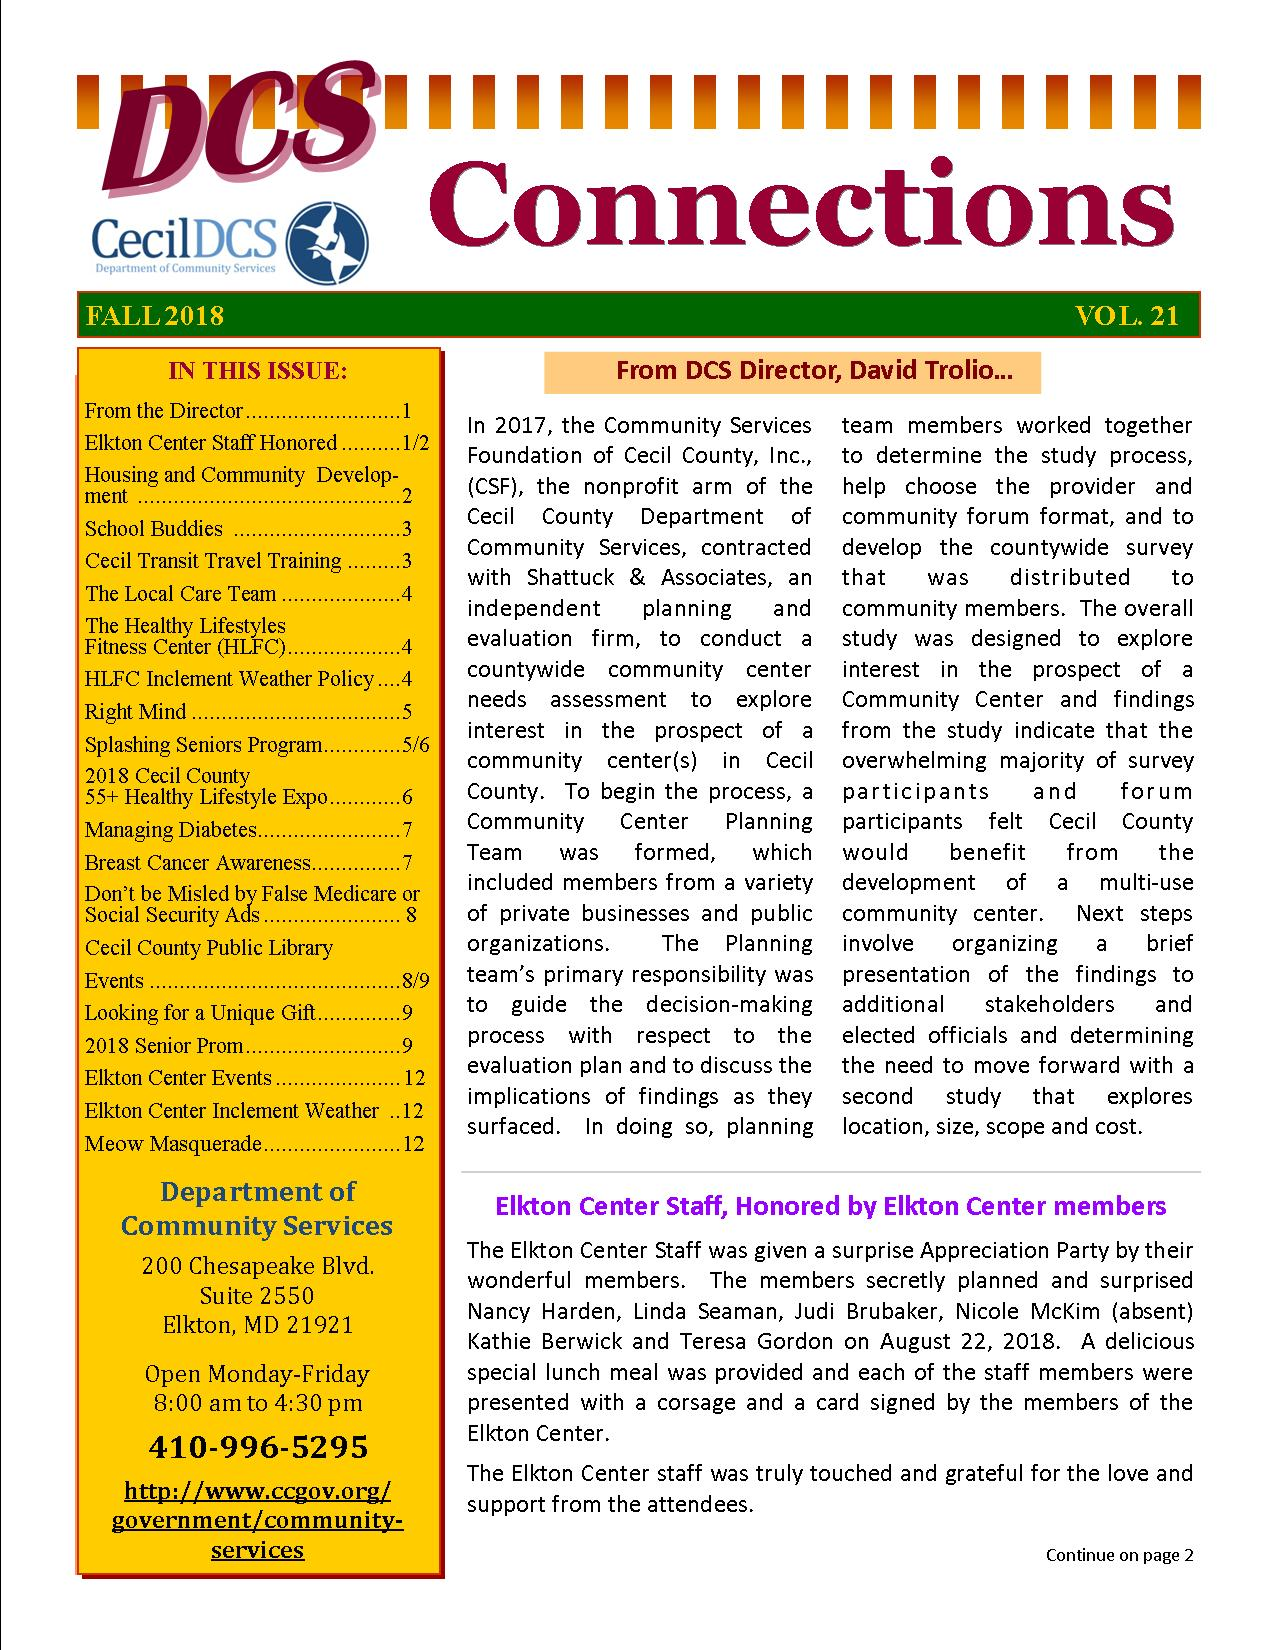 Connections Vol. 21